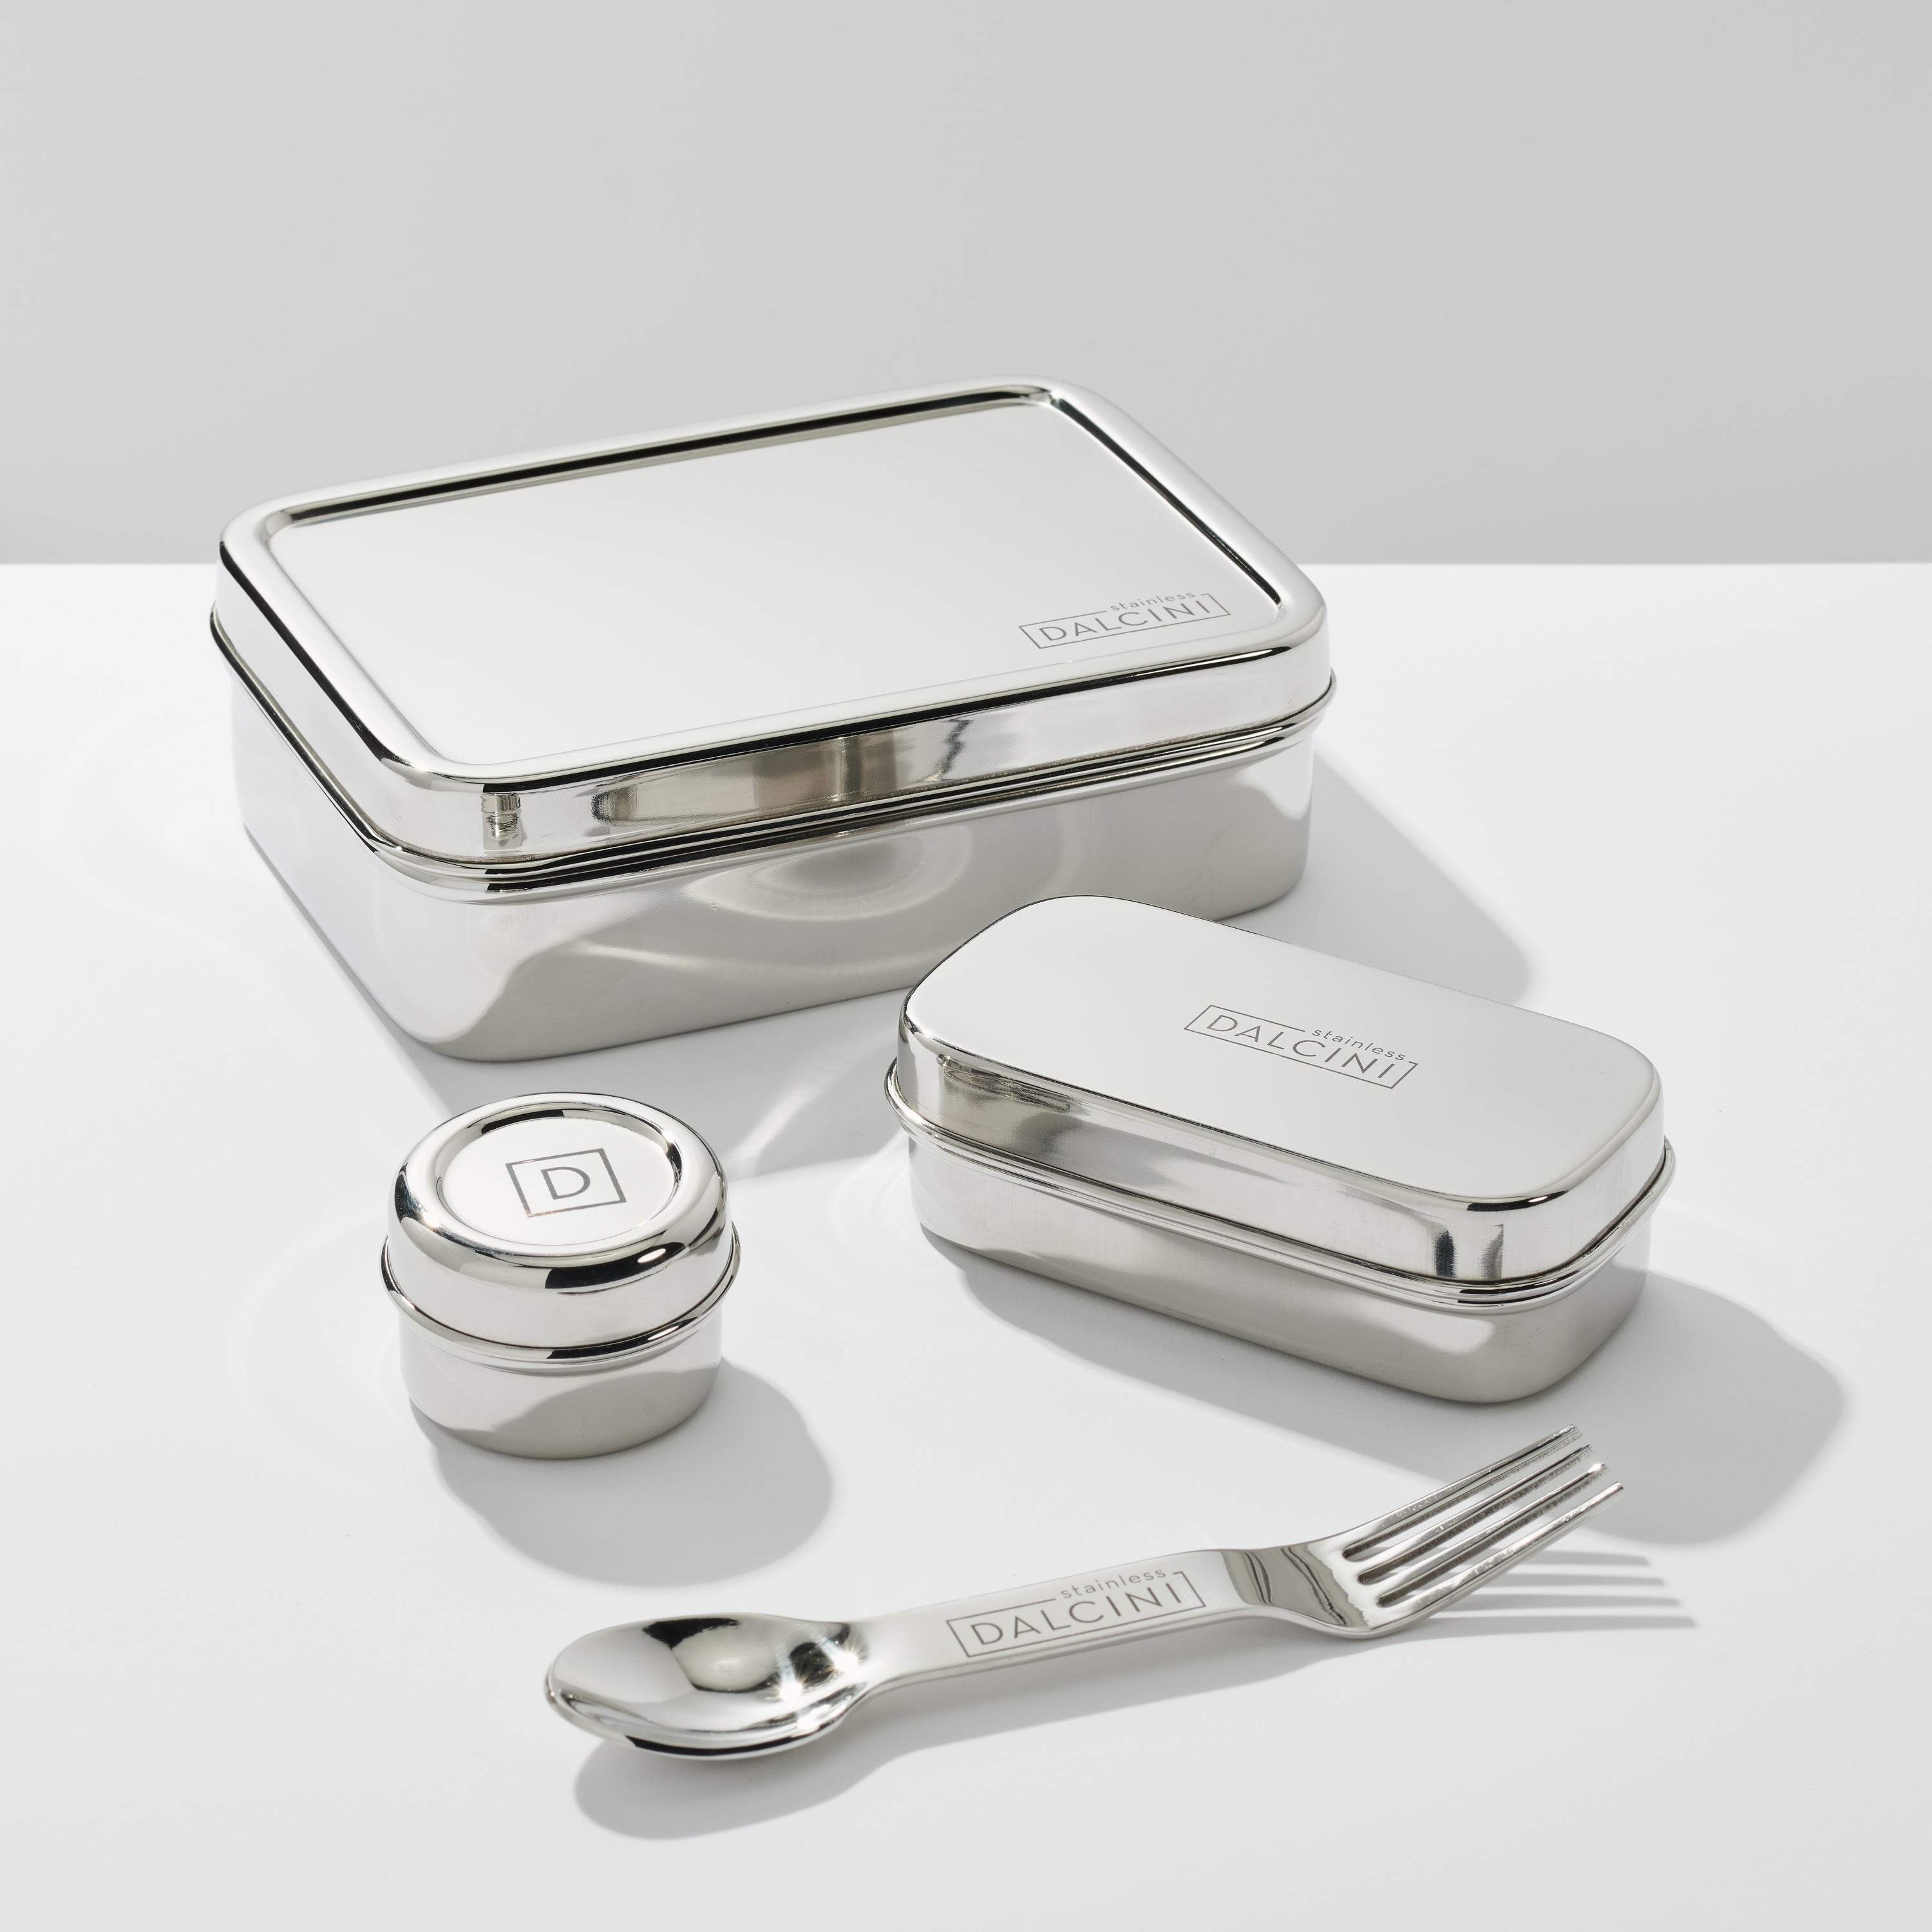 Lunch For One - DALCINI Stainless